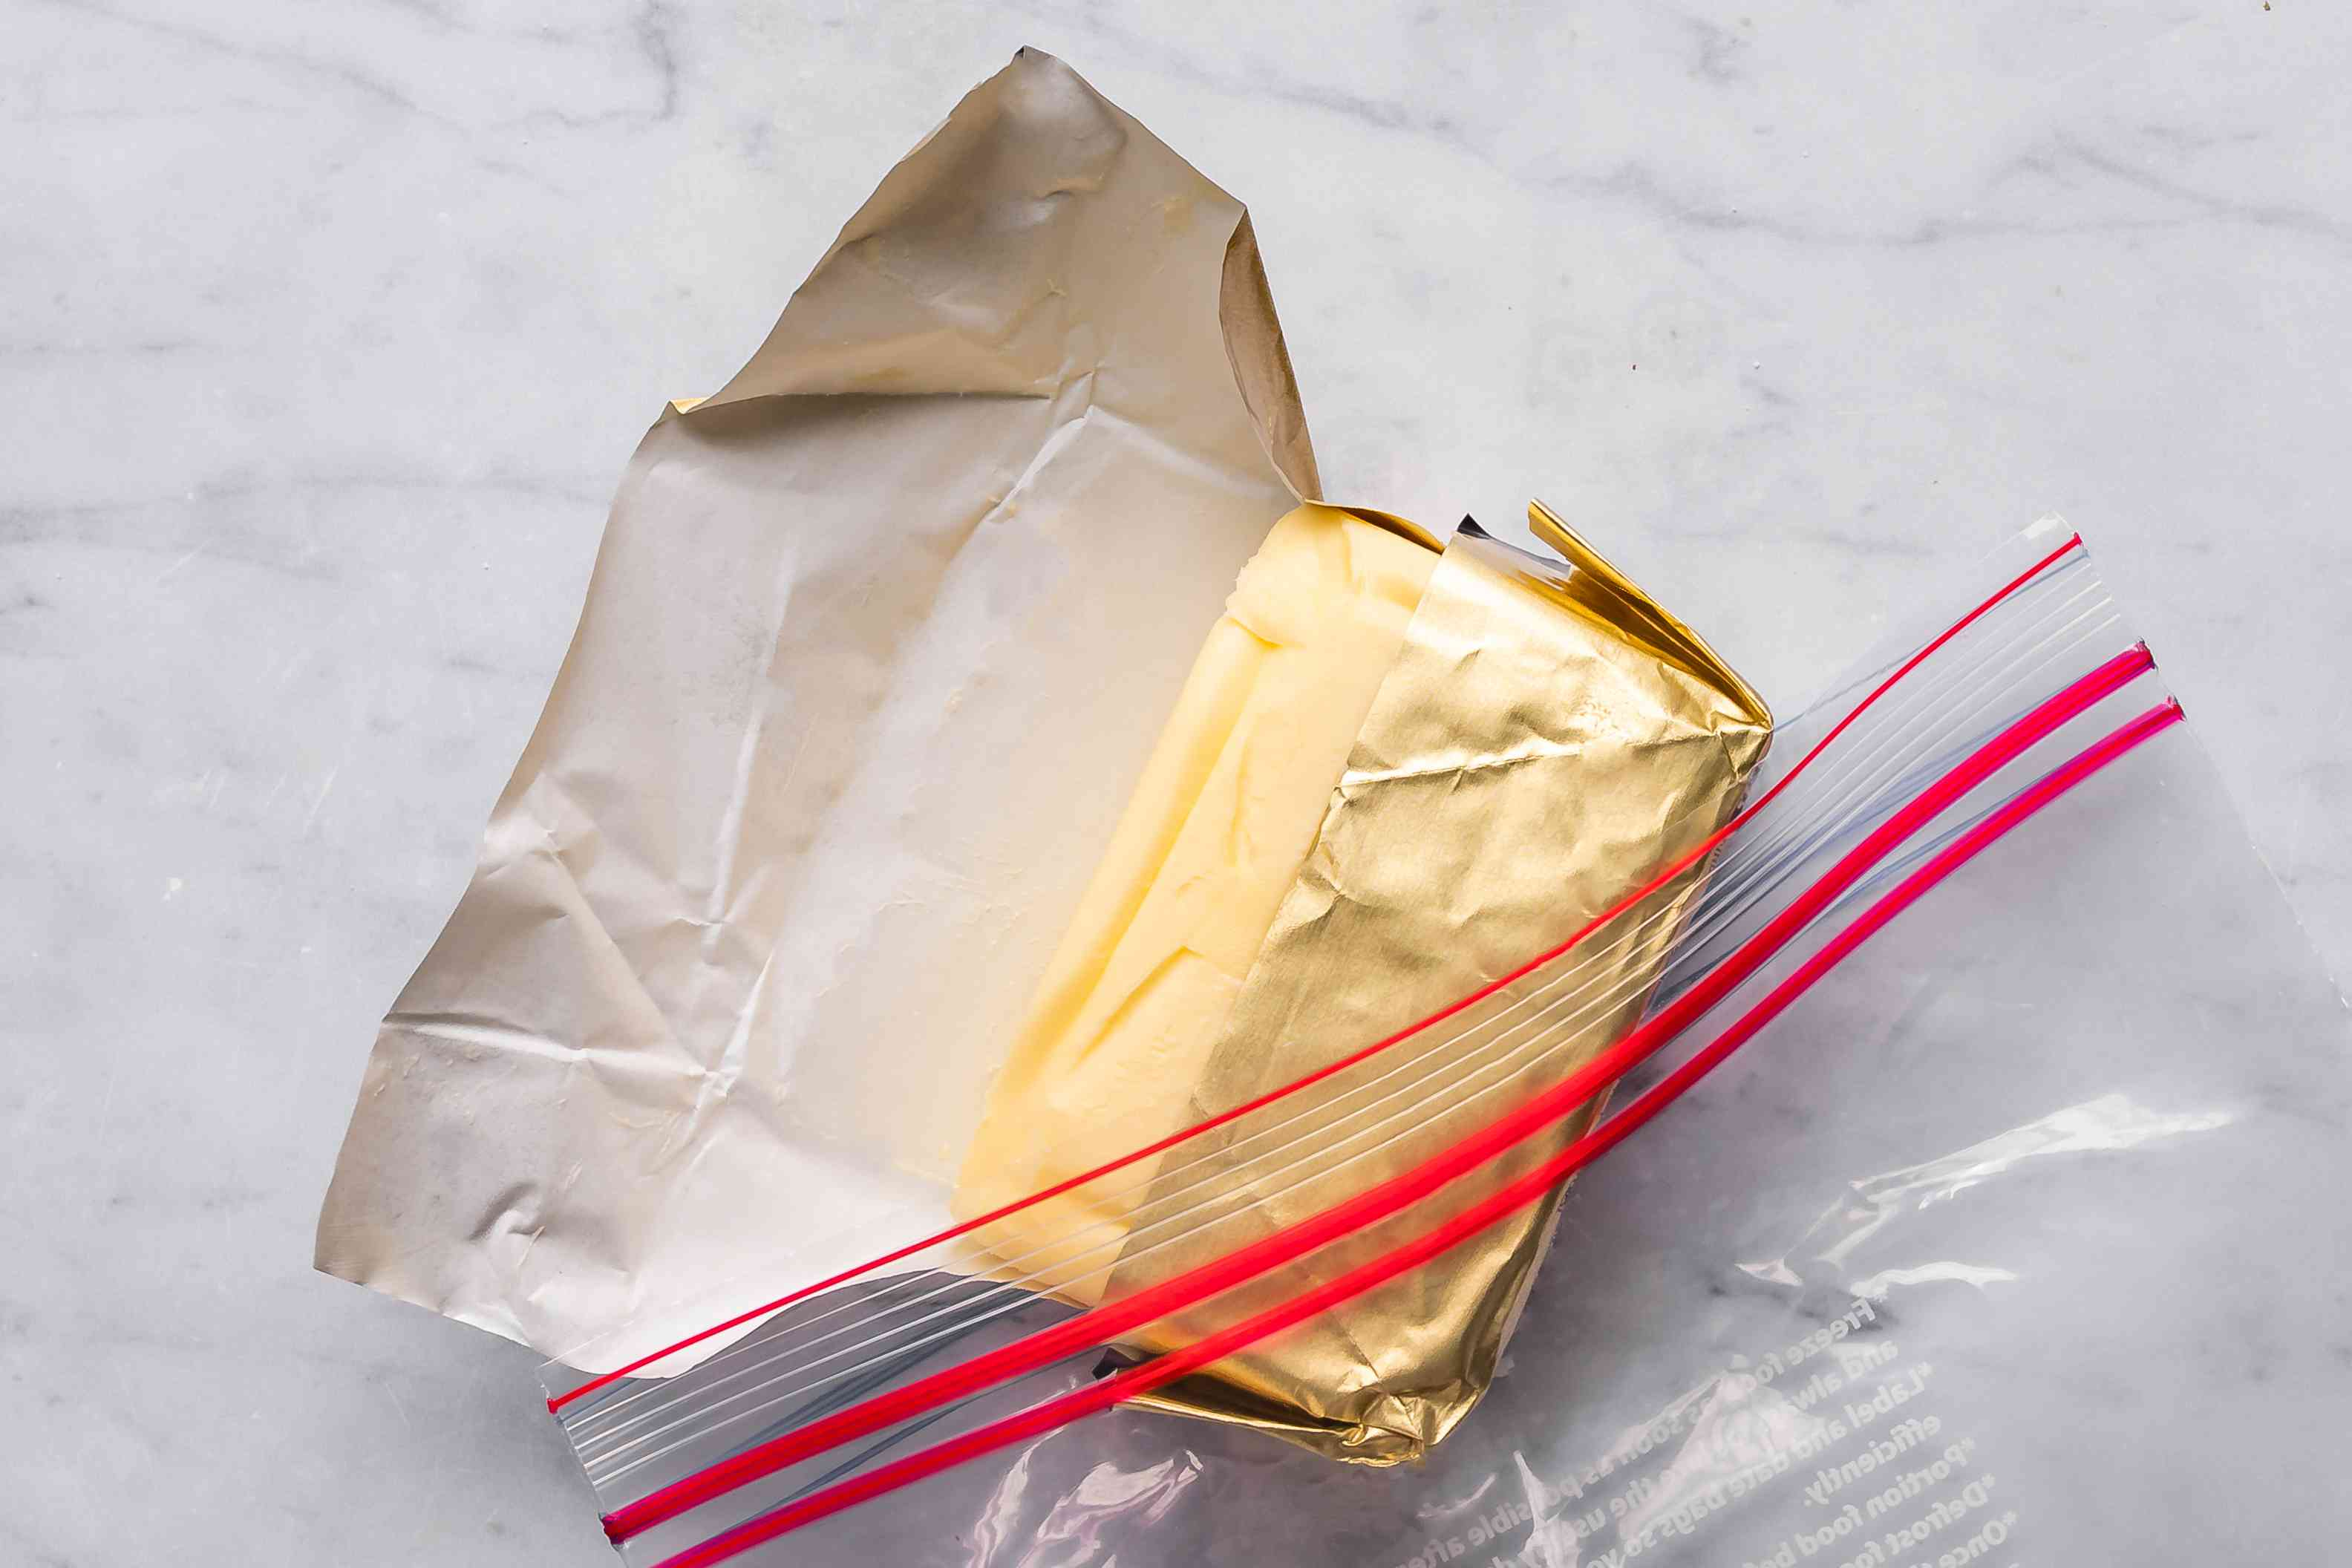 Butter out of package